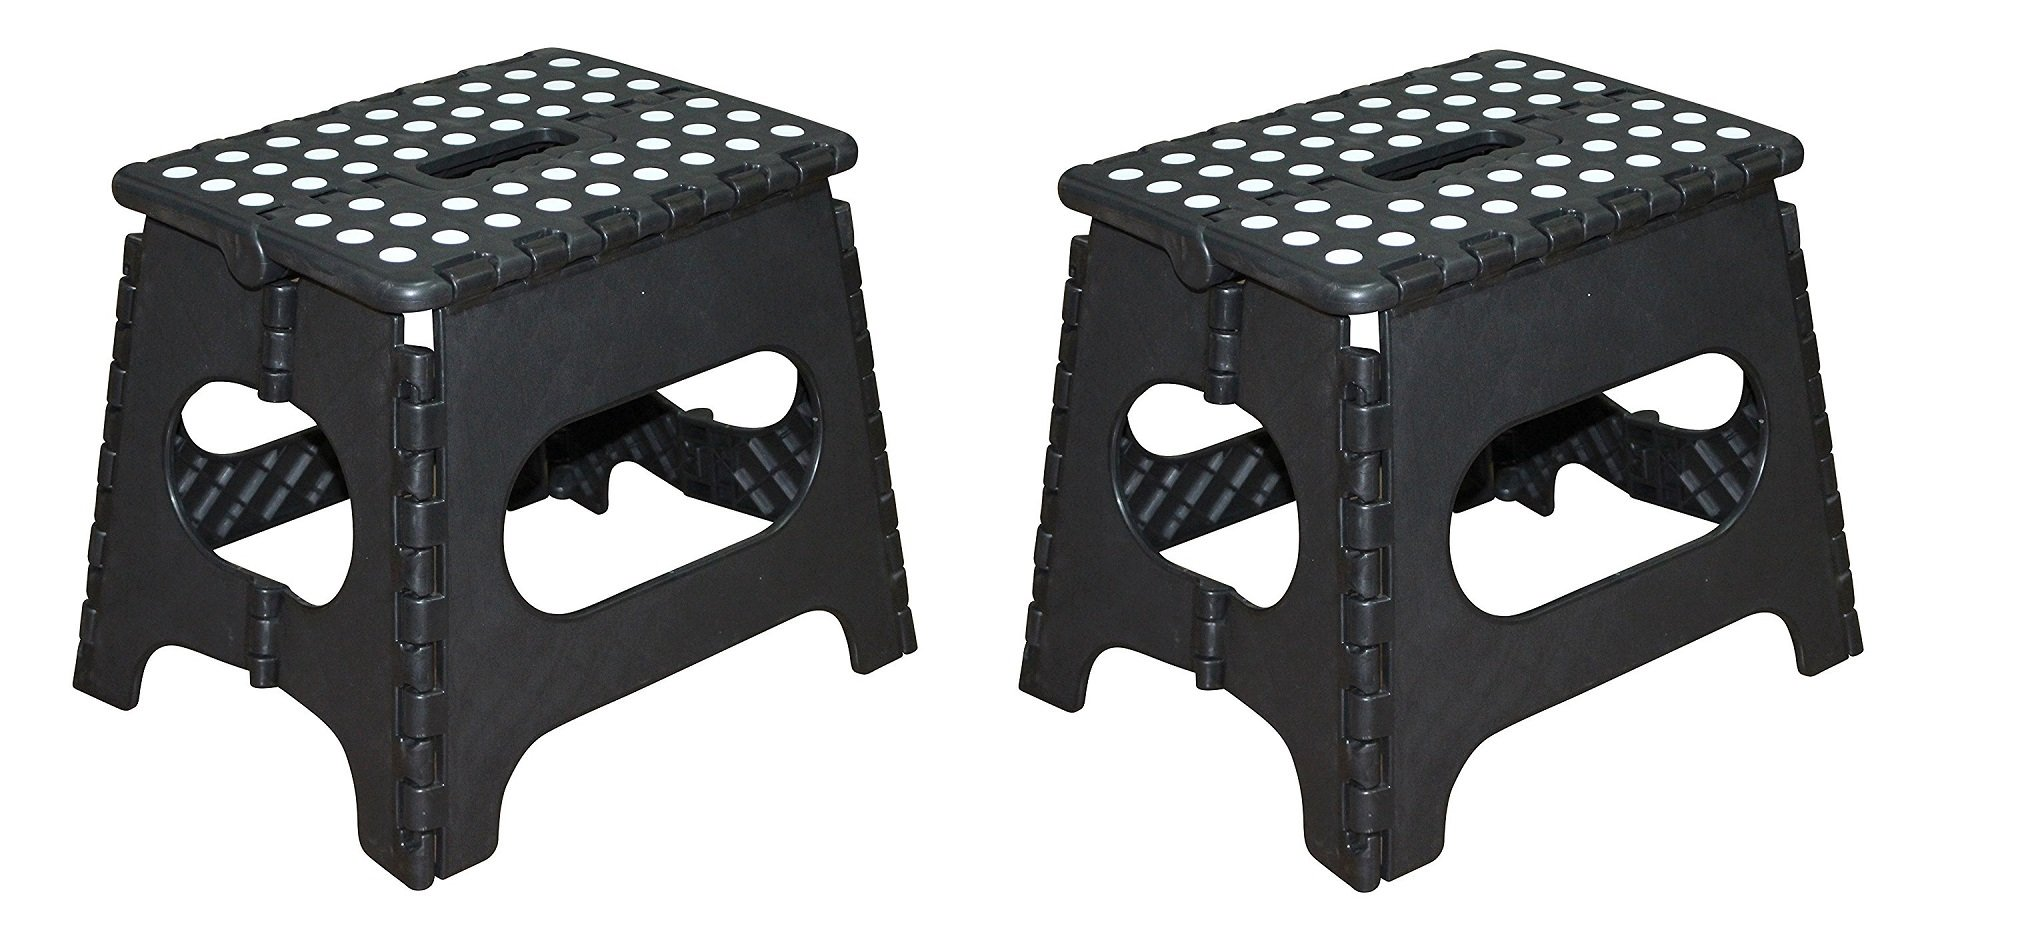 Brilliant Buy Jeronic Super Strong Folding Step Stool For Adults And Ibusinesslaw Wood Chair Design Ideas Ibusinesslaworg